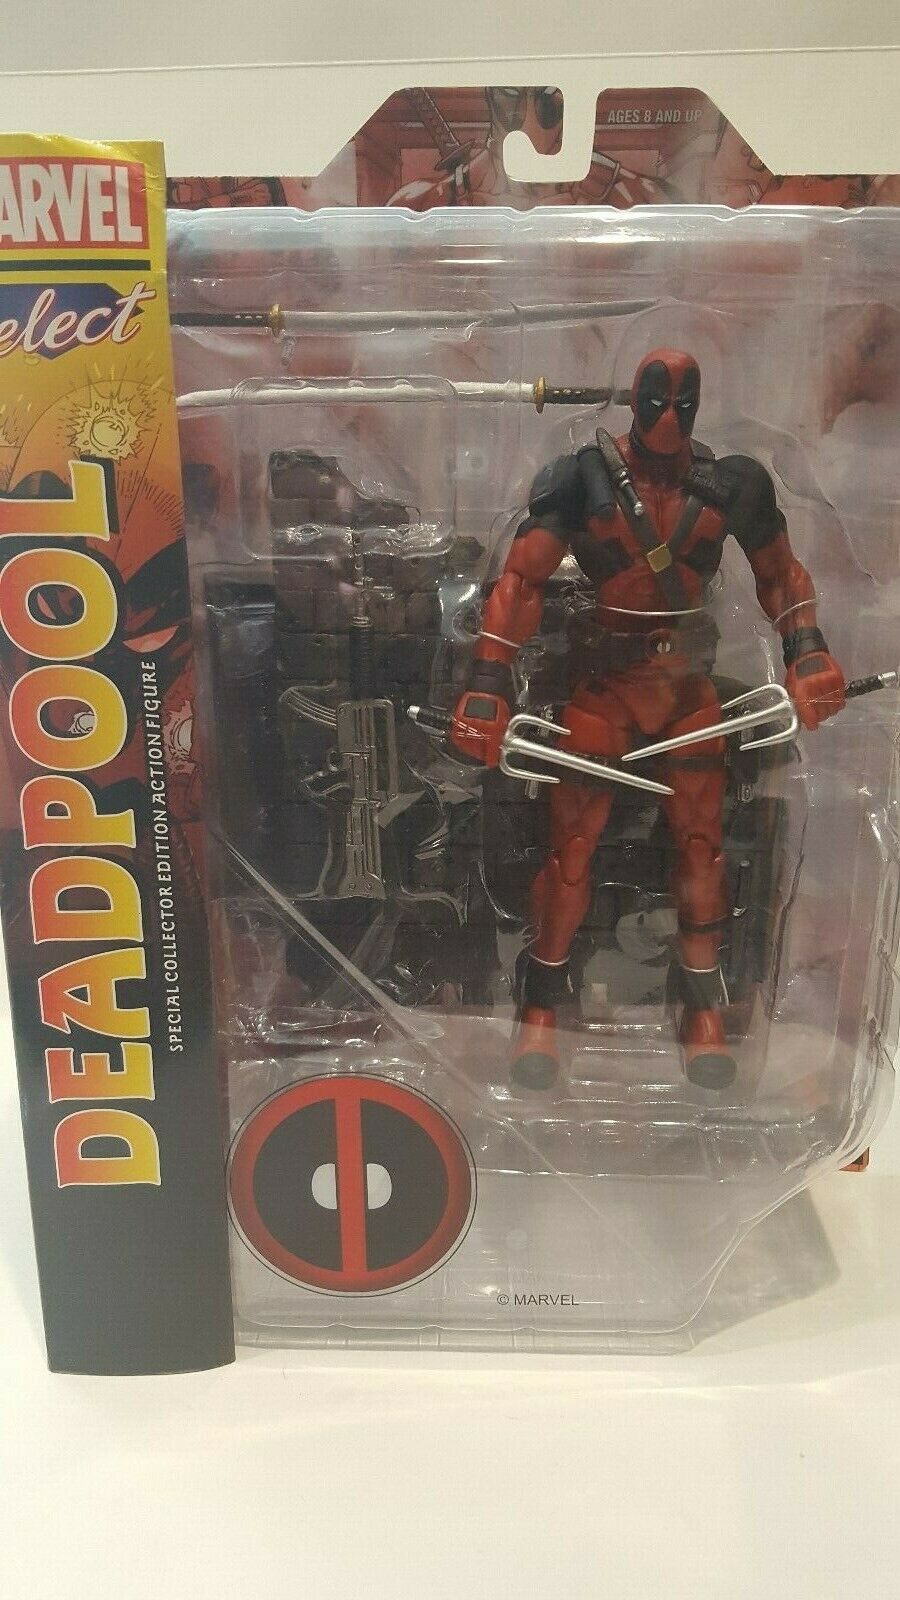 2015 MARVEL DIAMOND SELECT DEADPOOL X-MEN COLLECTIBLE ACTION FIGURE FIGURE FIGURE NEW IN BOX d46